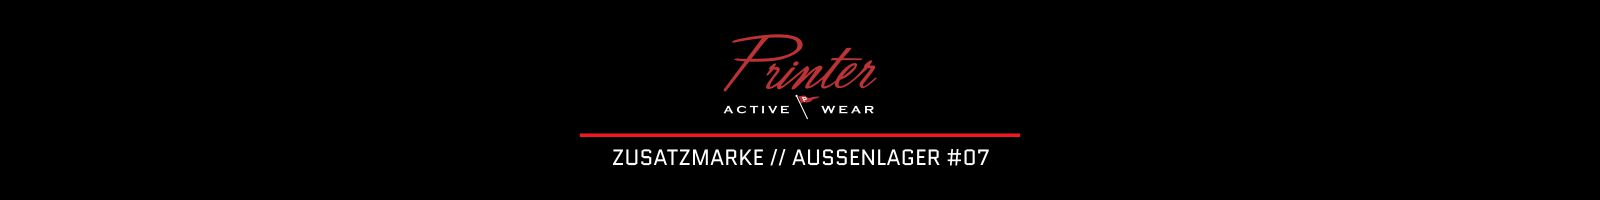 Kategorie-Marken => Printer Active Wear